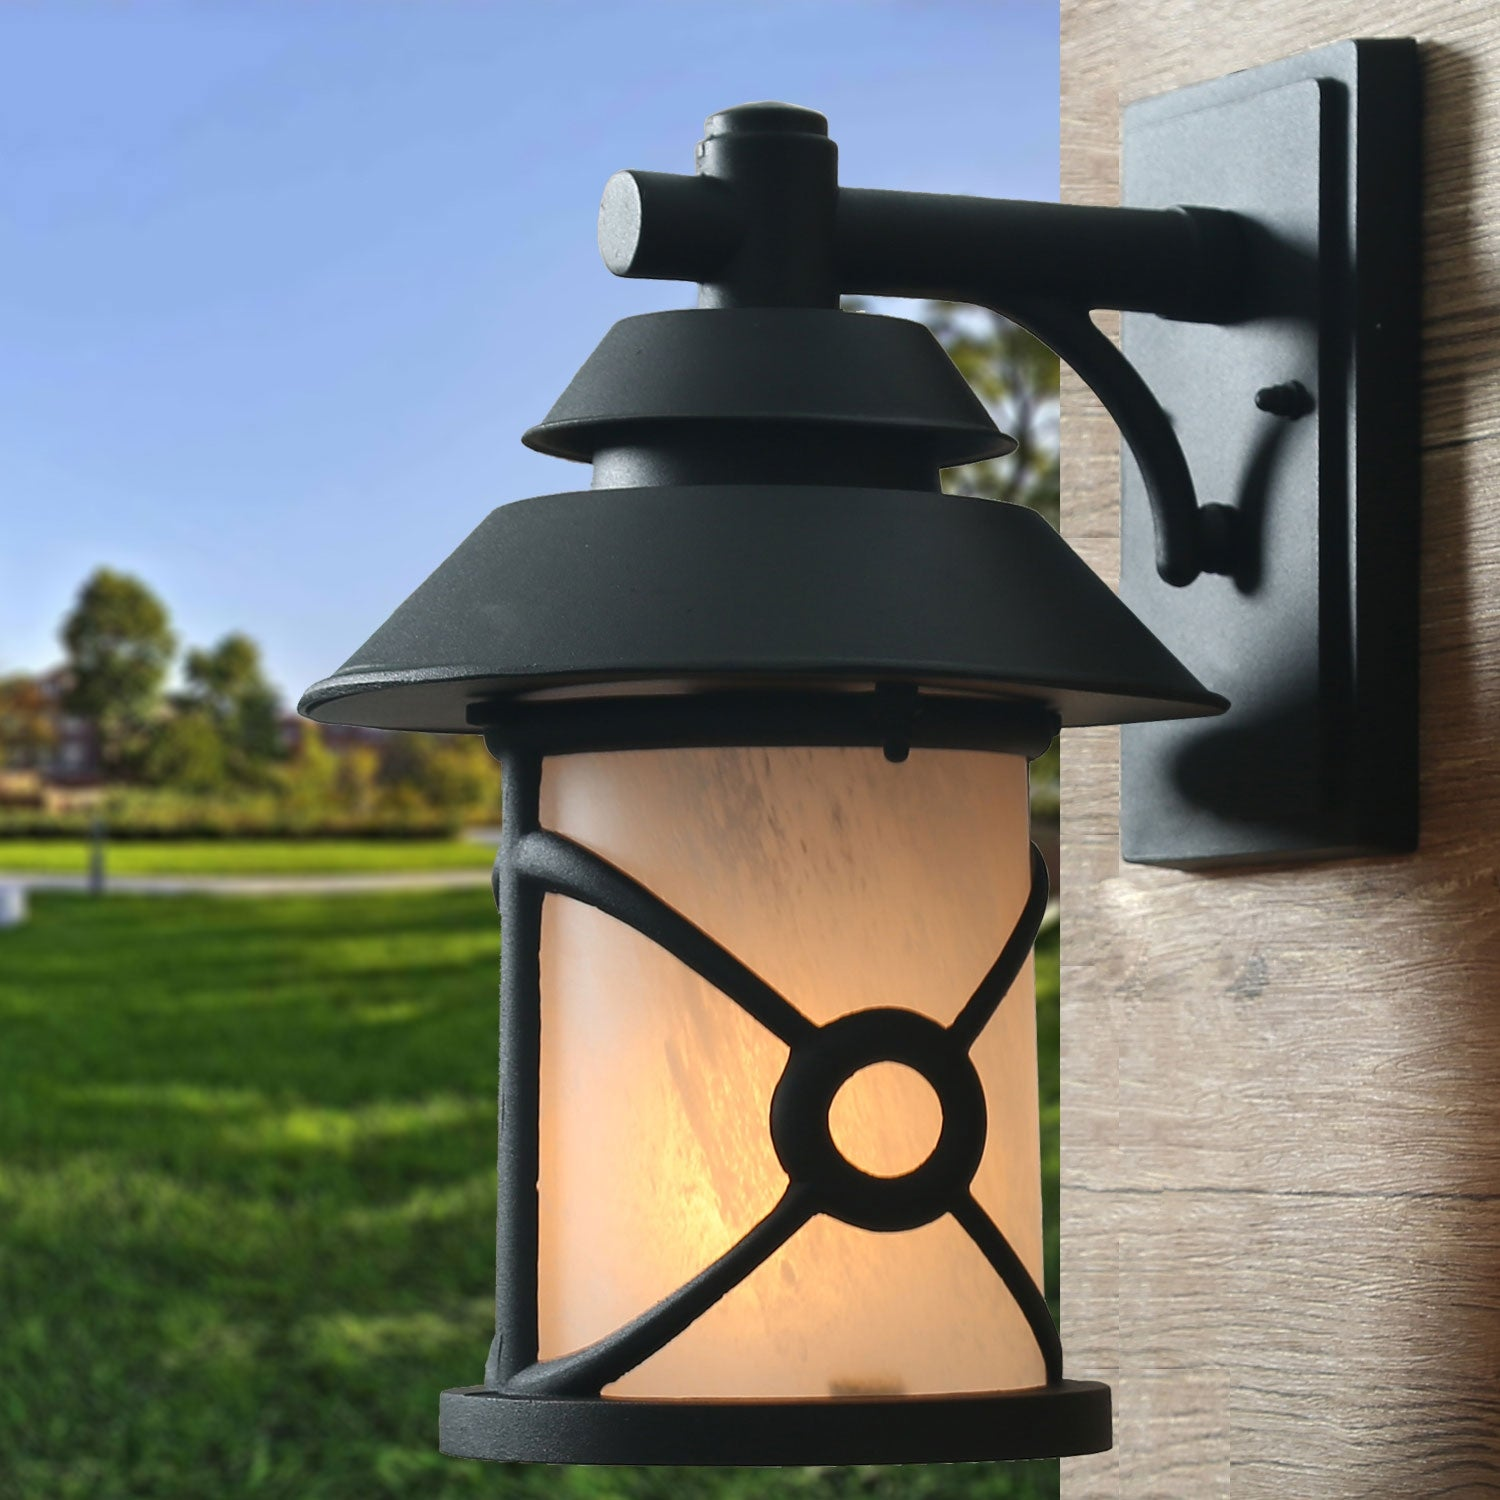 Image of: Shop Black Friday Deals On Hawke S Bay Farmhouse 1 Light Outdoor Wall Lantern Glass Shade Wall Sconce D9 X10 6 Xh13 4 Overstock 28582964